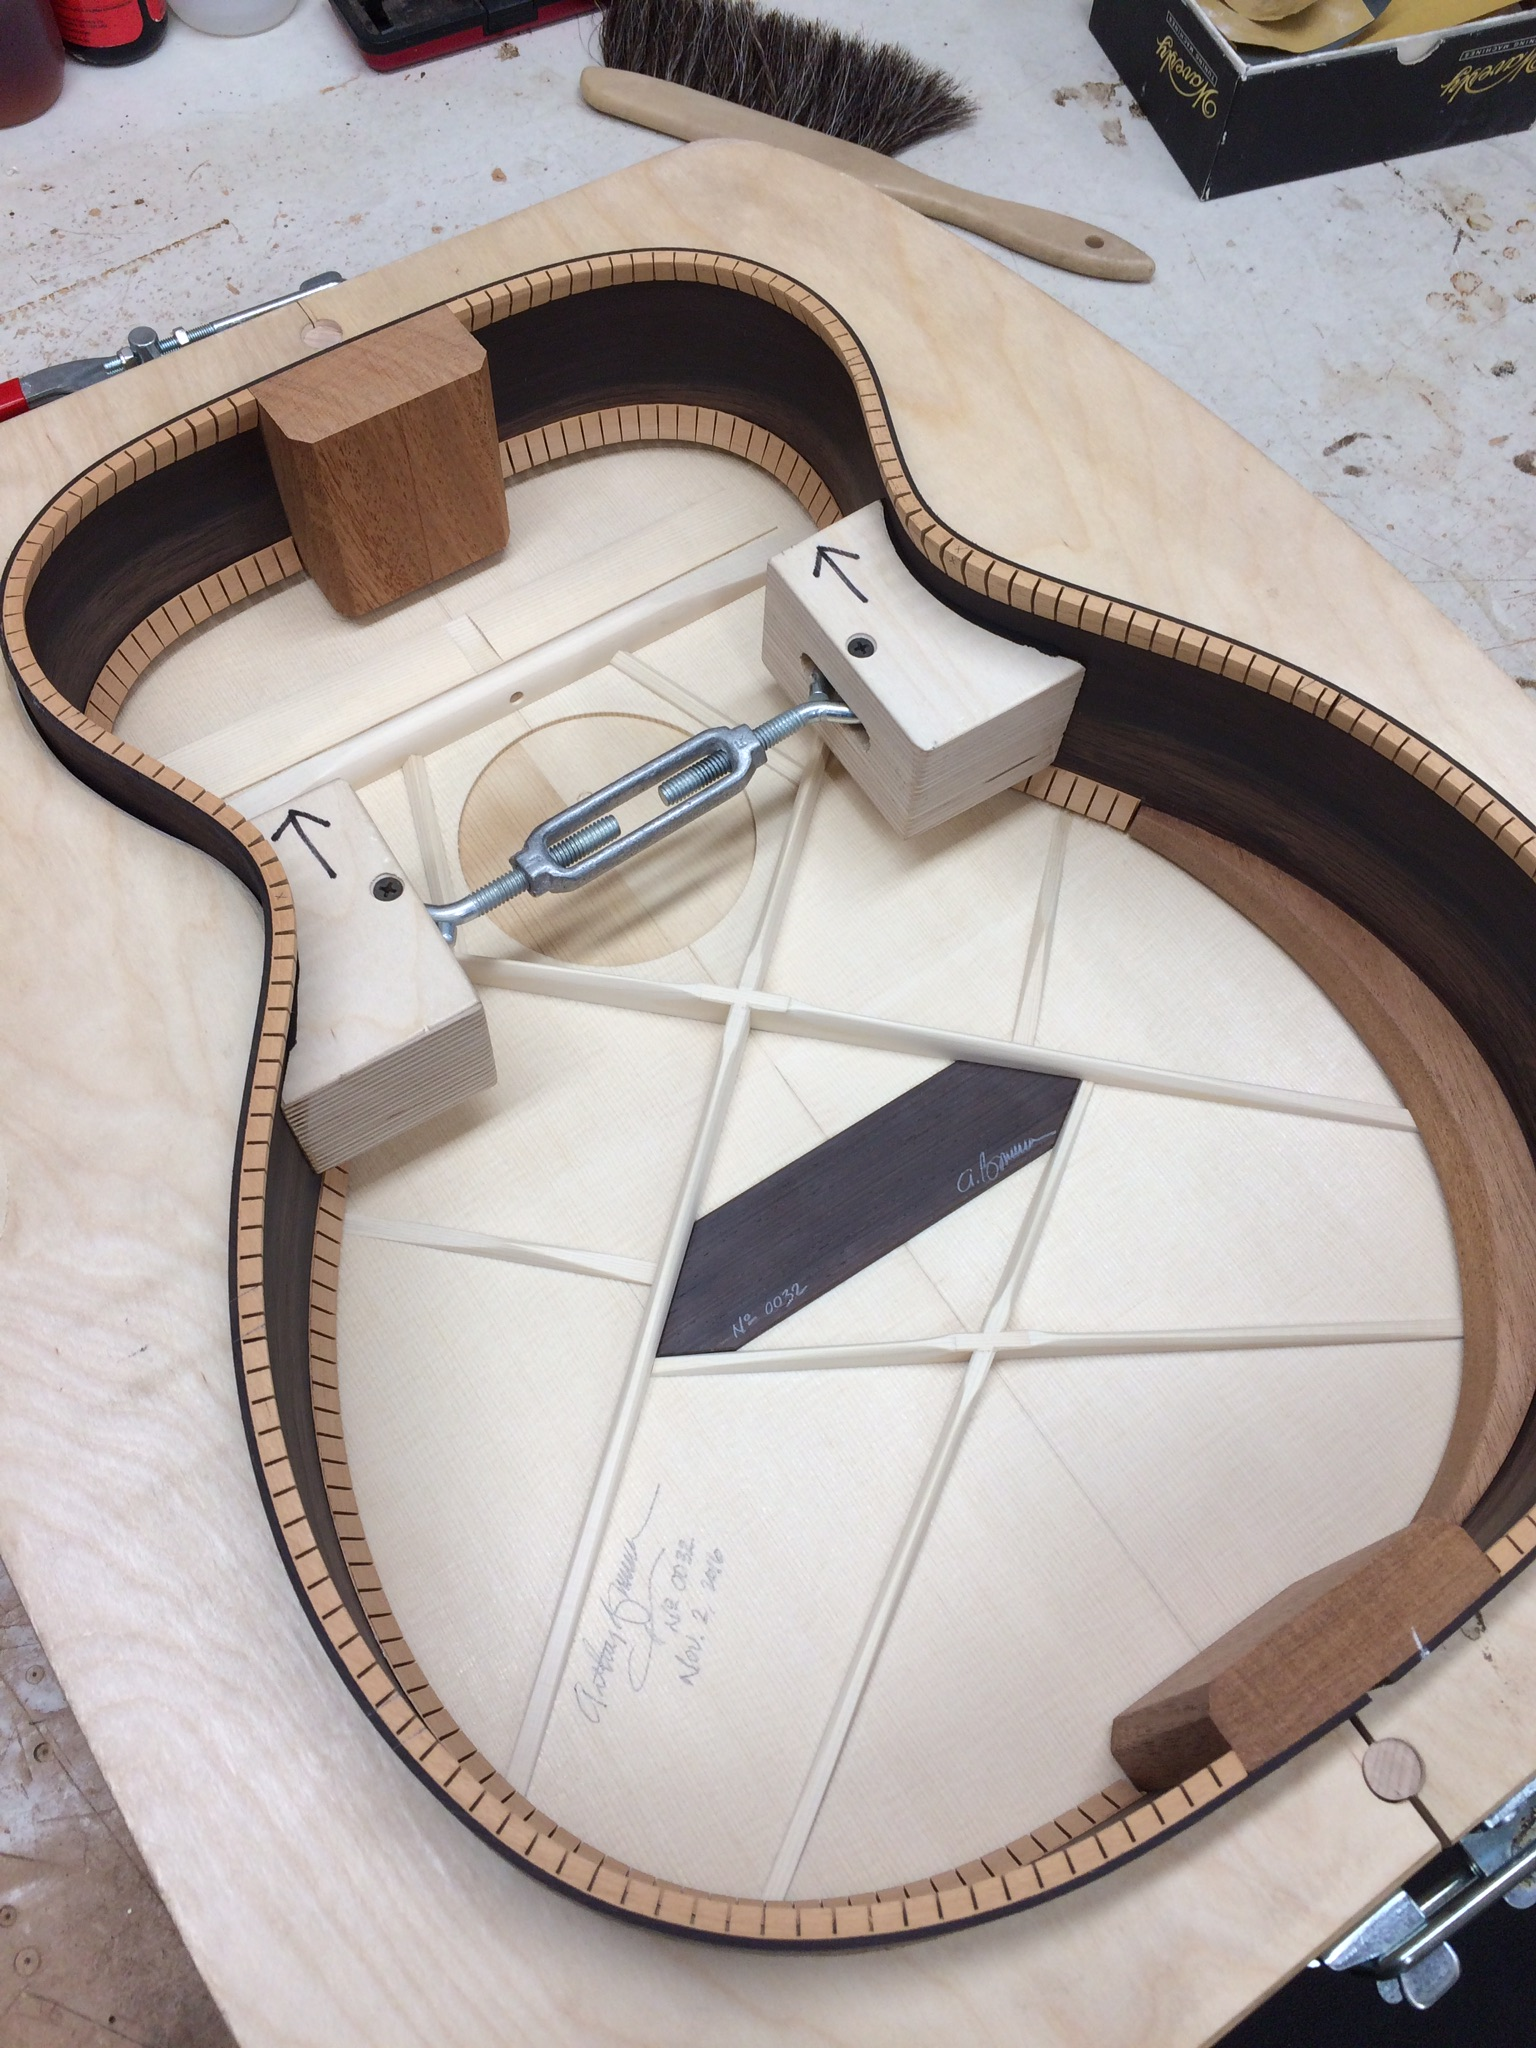 The top fully braced showing the forward shifted double X pattern with Brazilian rosewood bridge plate. This also shows how the edge bevel is supported on the interior.